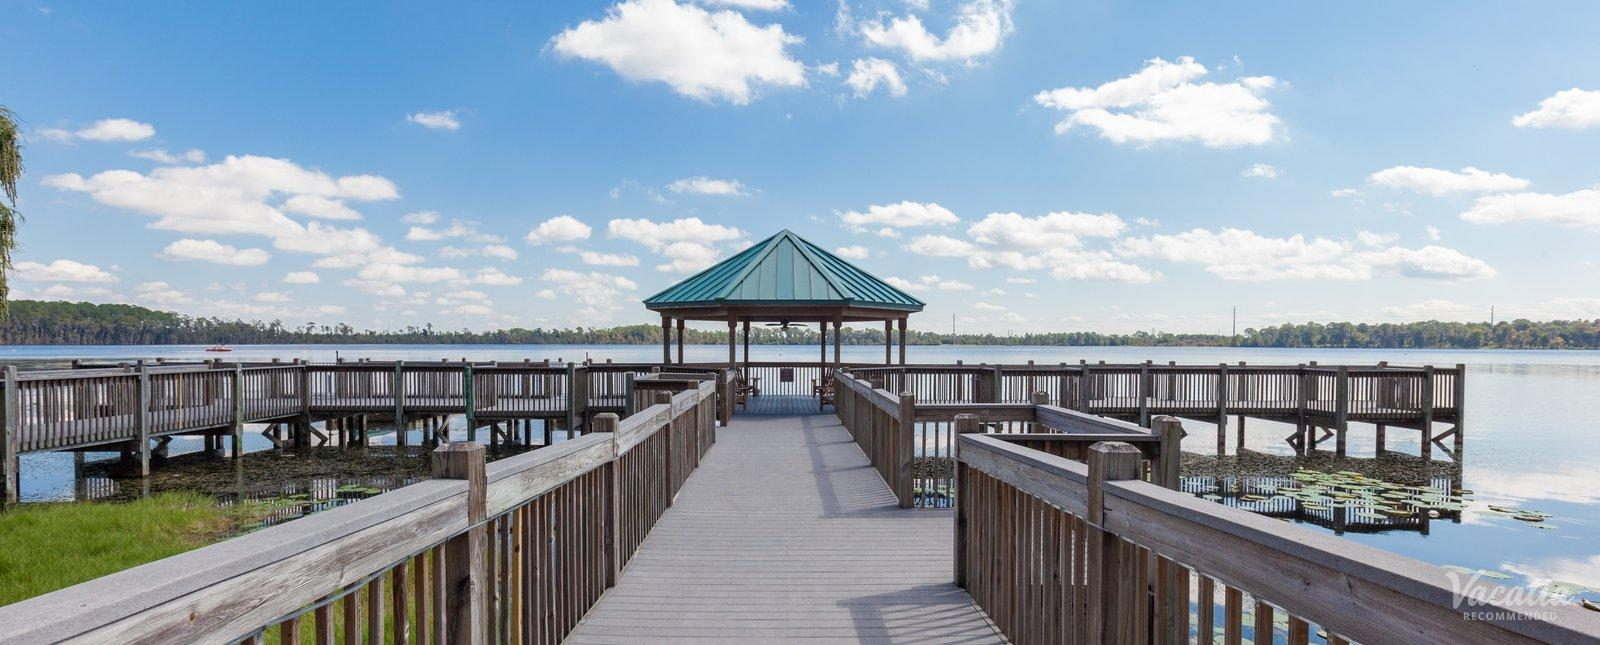 Blue Heron Resort Lake Bryan Boardwalk